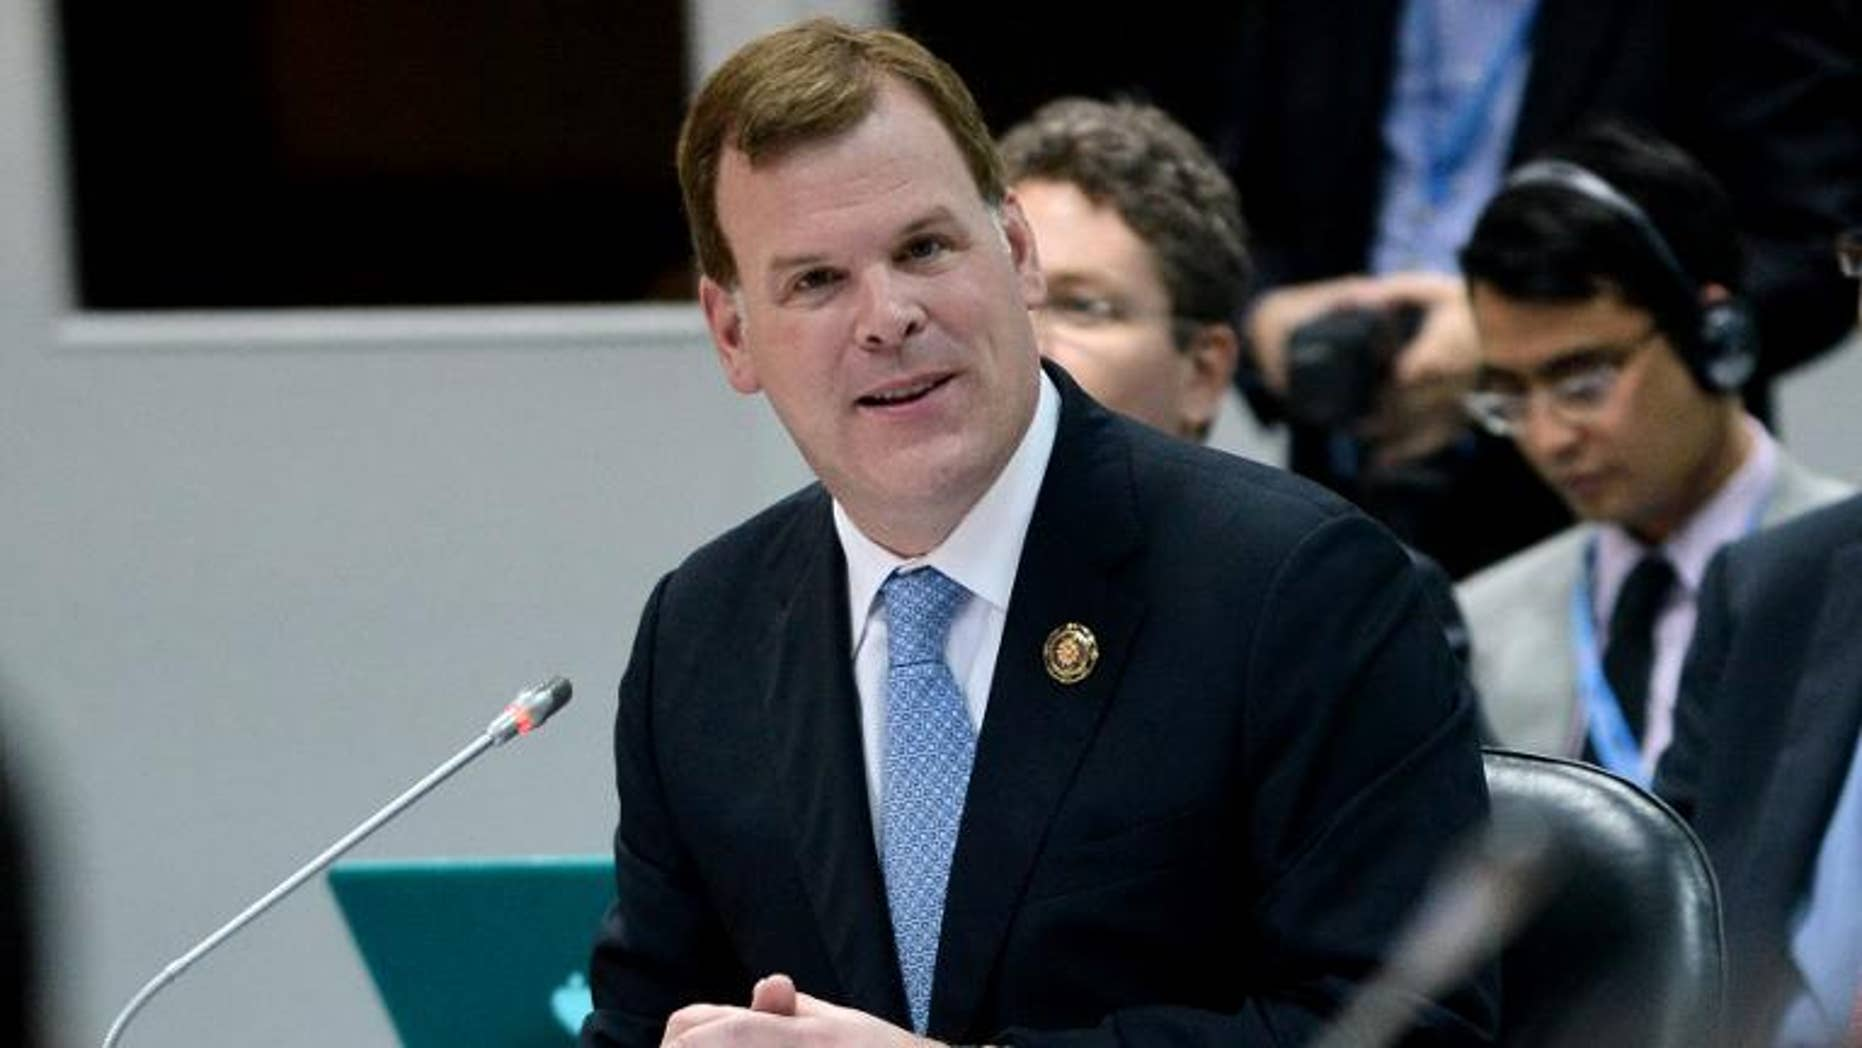 Canada Foreign Minister John Baird in Brunei on July 1, 2013